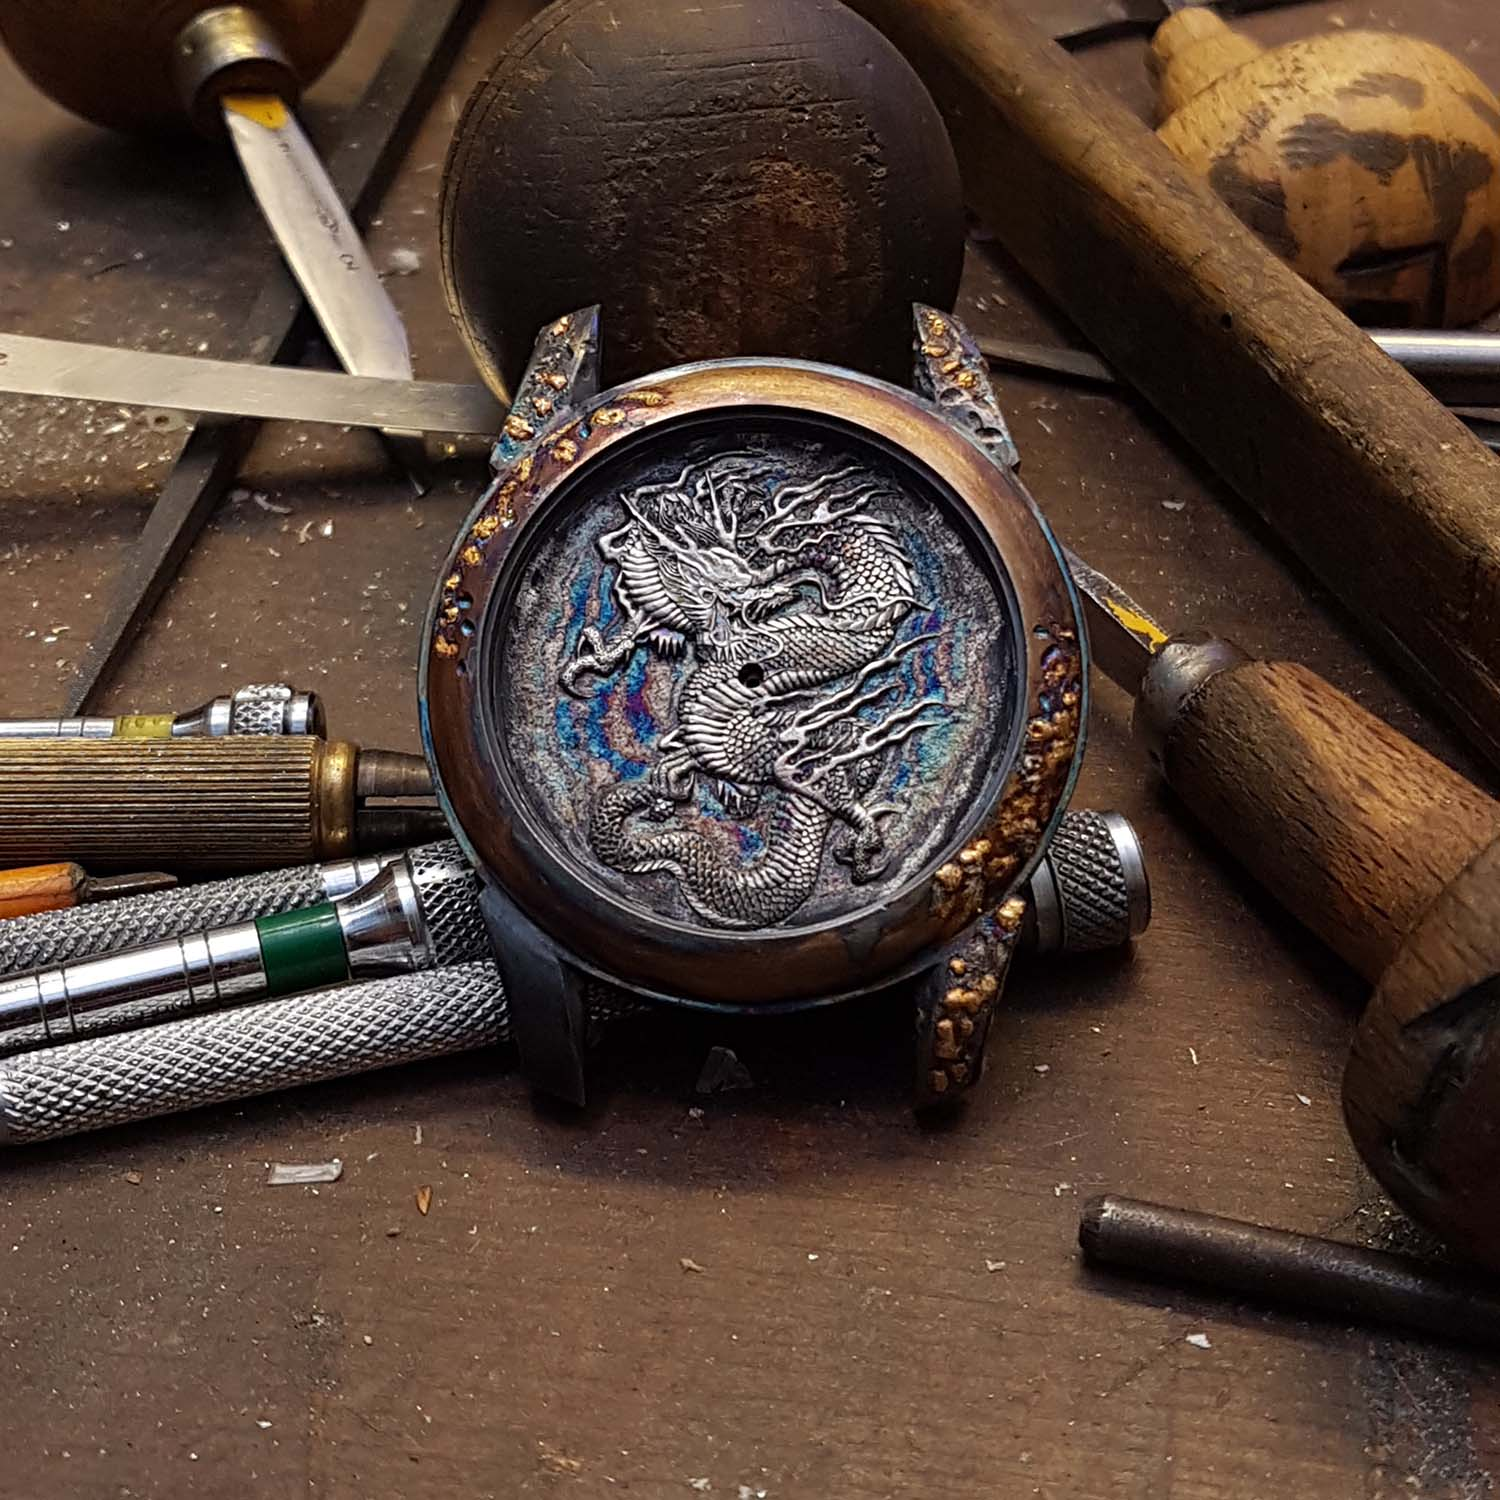 Hand-Engraved Kees Engelbarts Organic Skeleton Ref 1867 - making of - 4